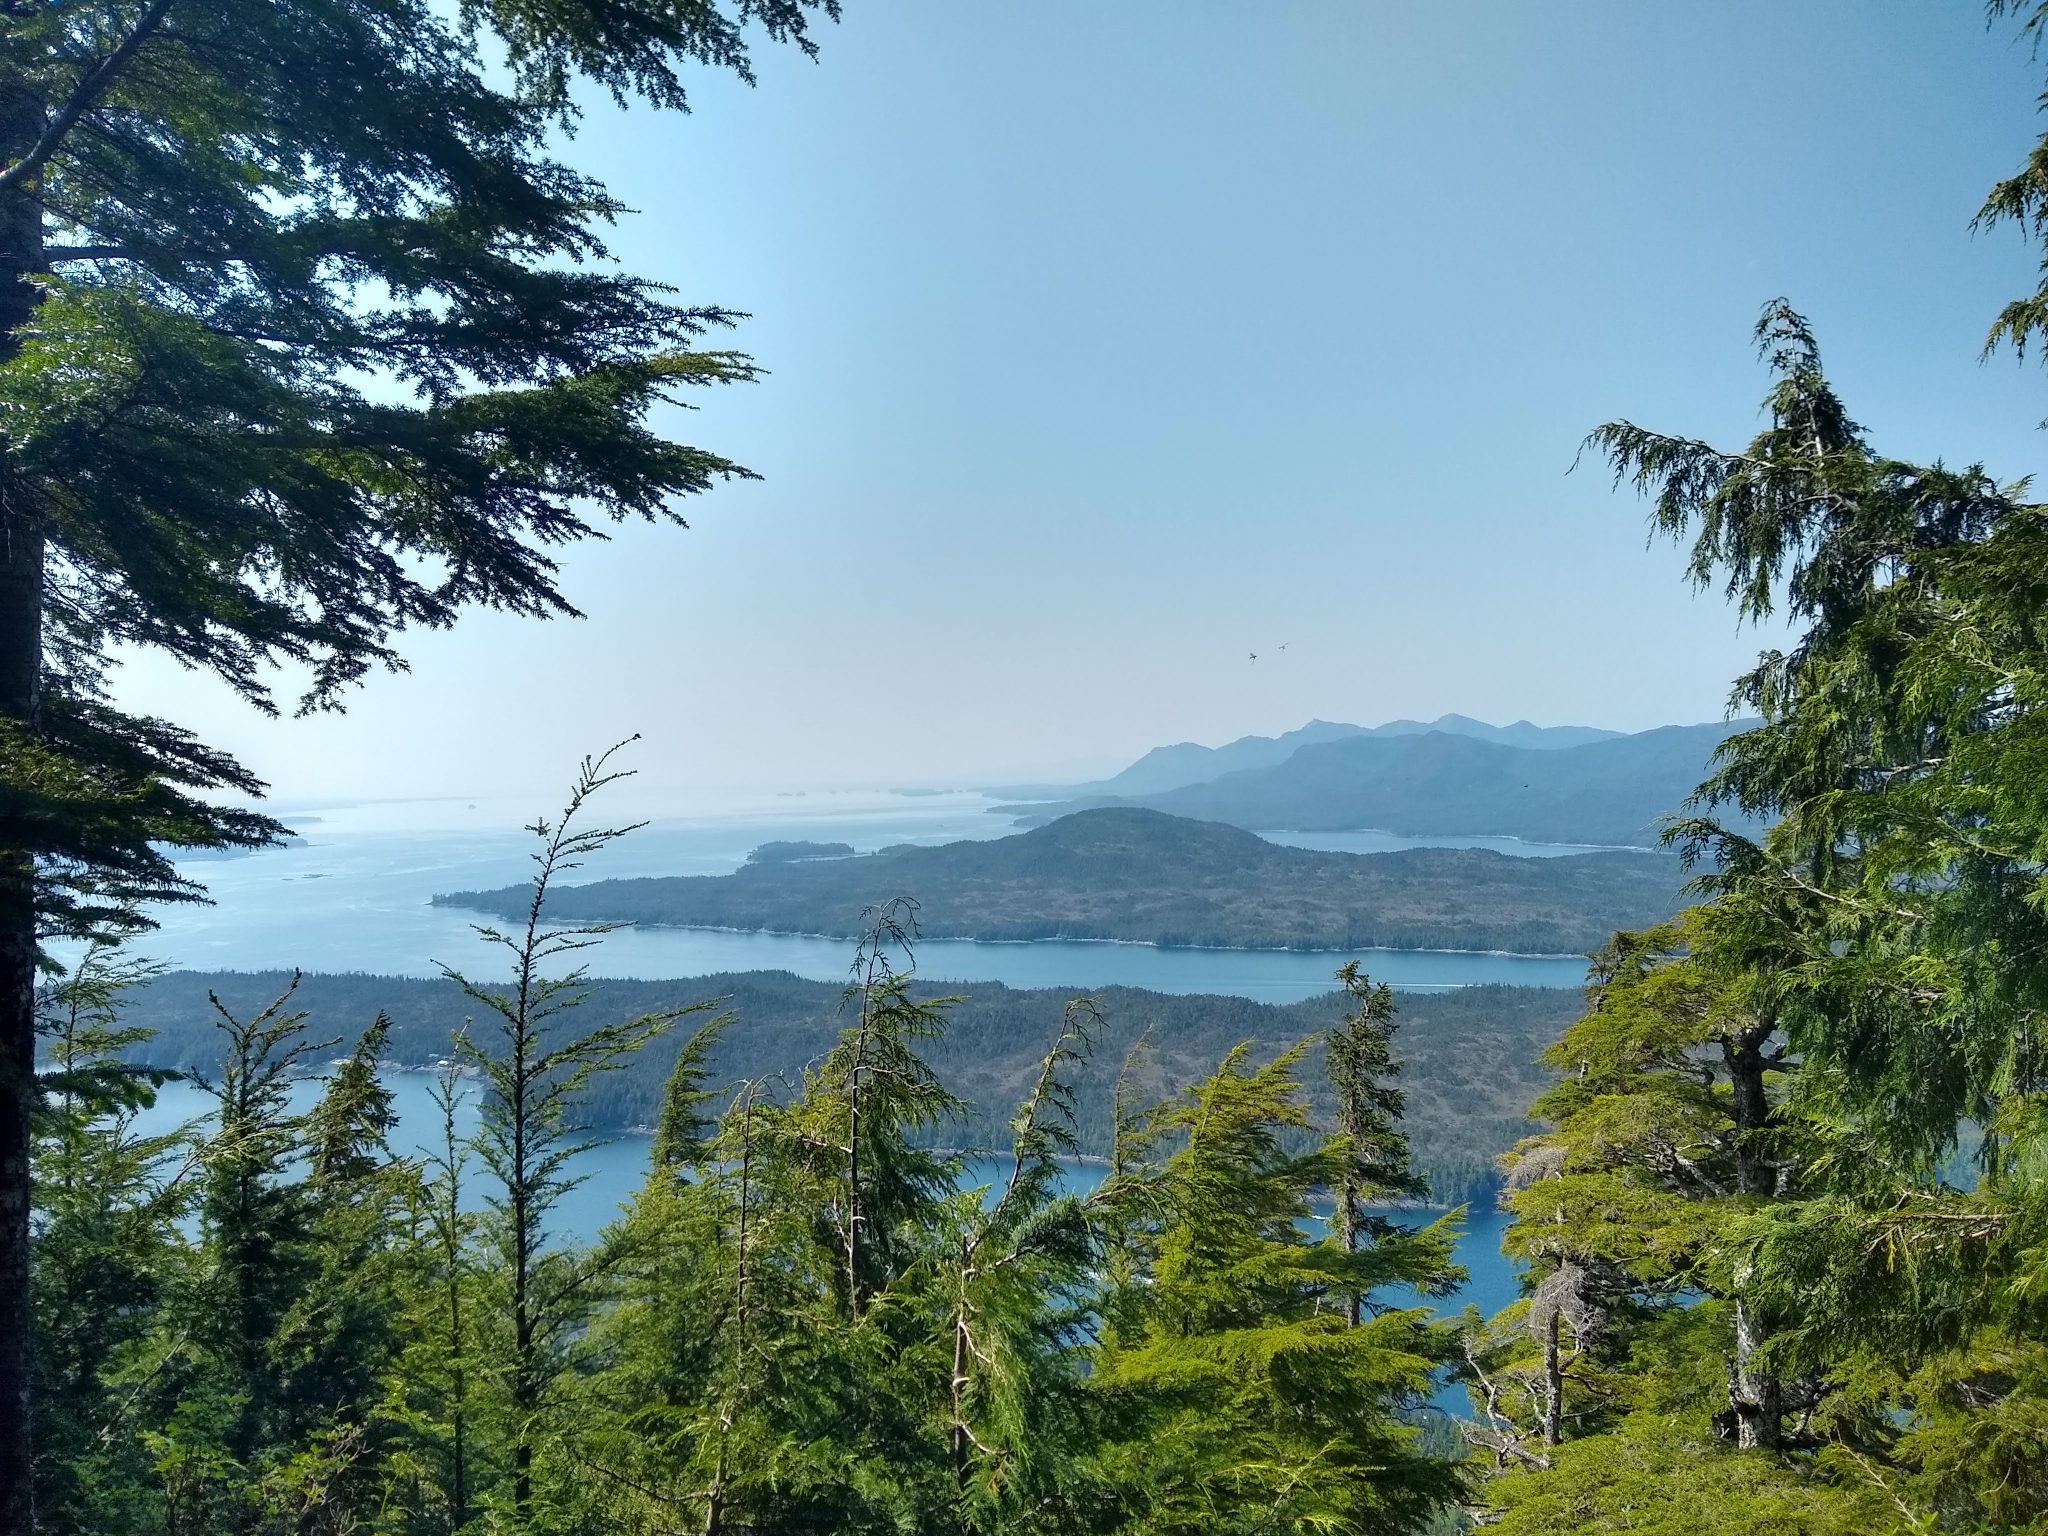 Several mountain islands covered in Evergreen trees are surrounded by blue water and framed in the foreground by evergreen trees on a hike in Ketchikan Alaska